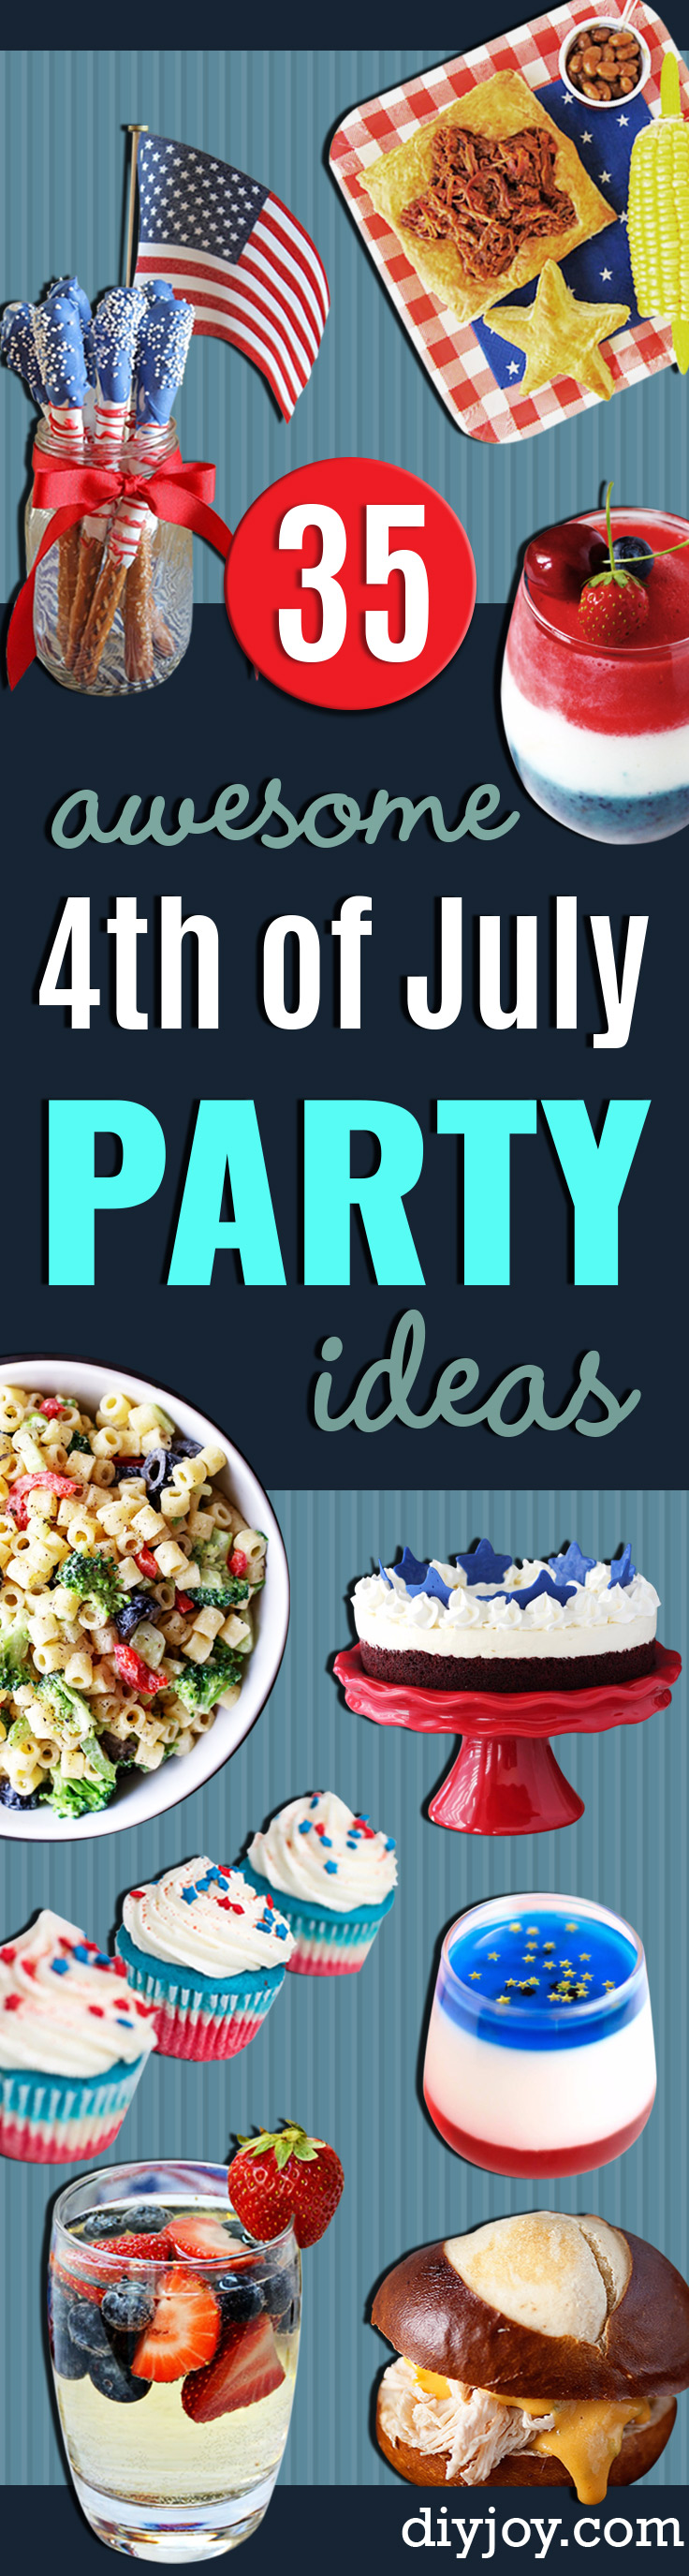 Best Fourth of July Food and Drink Ideas - BBQ on the 4th with these Desserts, Recipes and Ideas for Healthy Appetizers, Party Trays, Easy Meals for a Crowd and Fun Drink Ideas